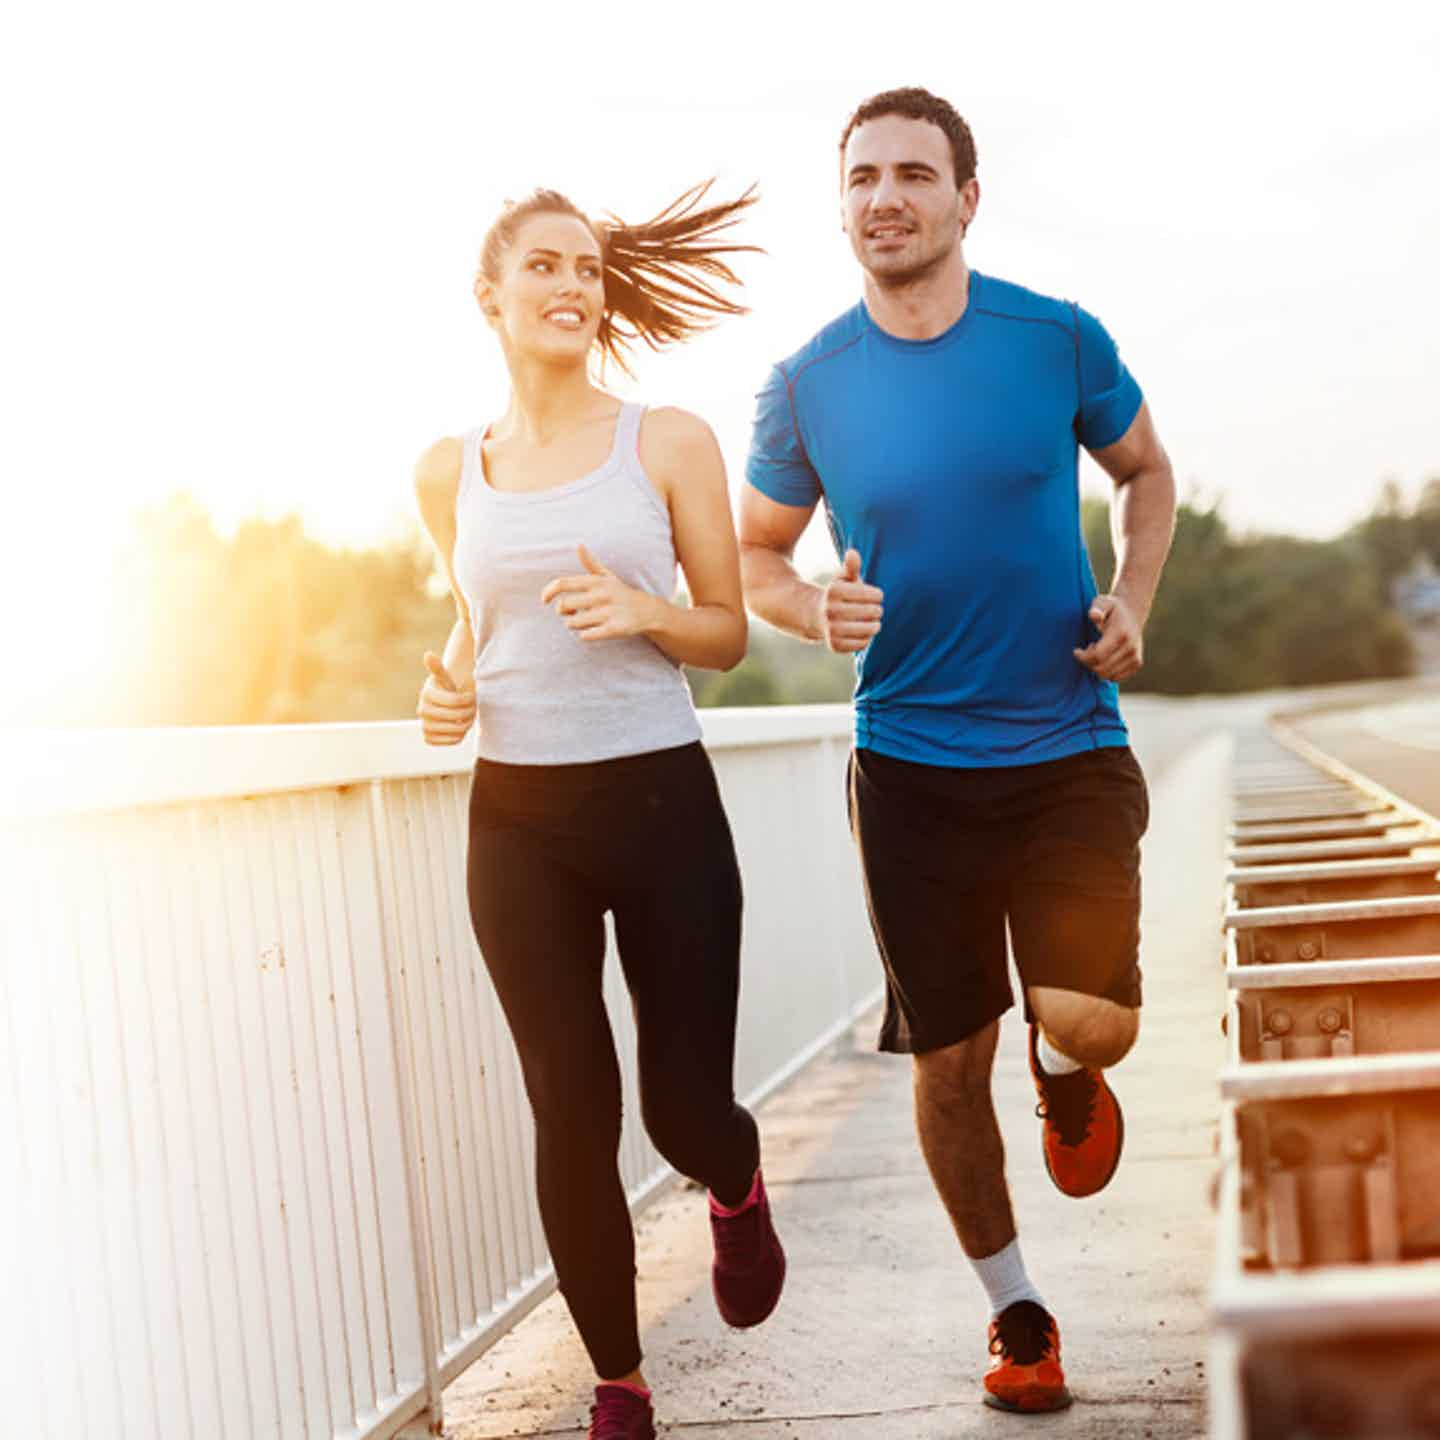 A couple running to stay hearth healthy